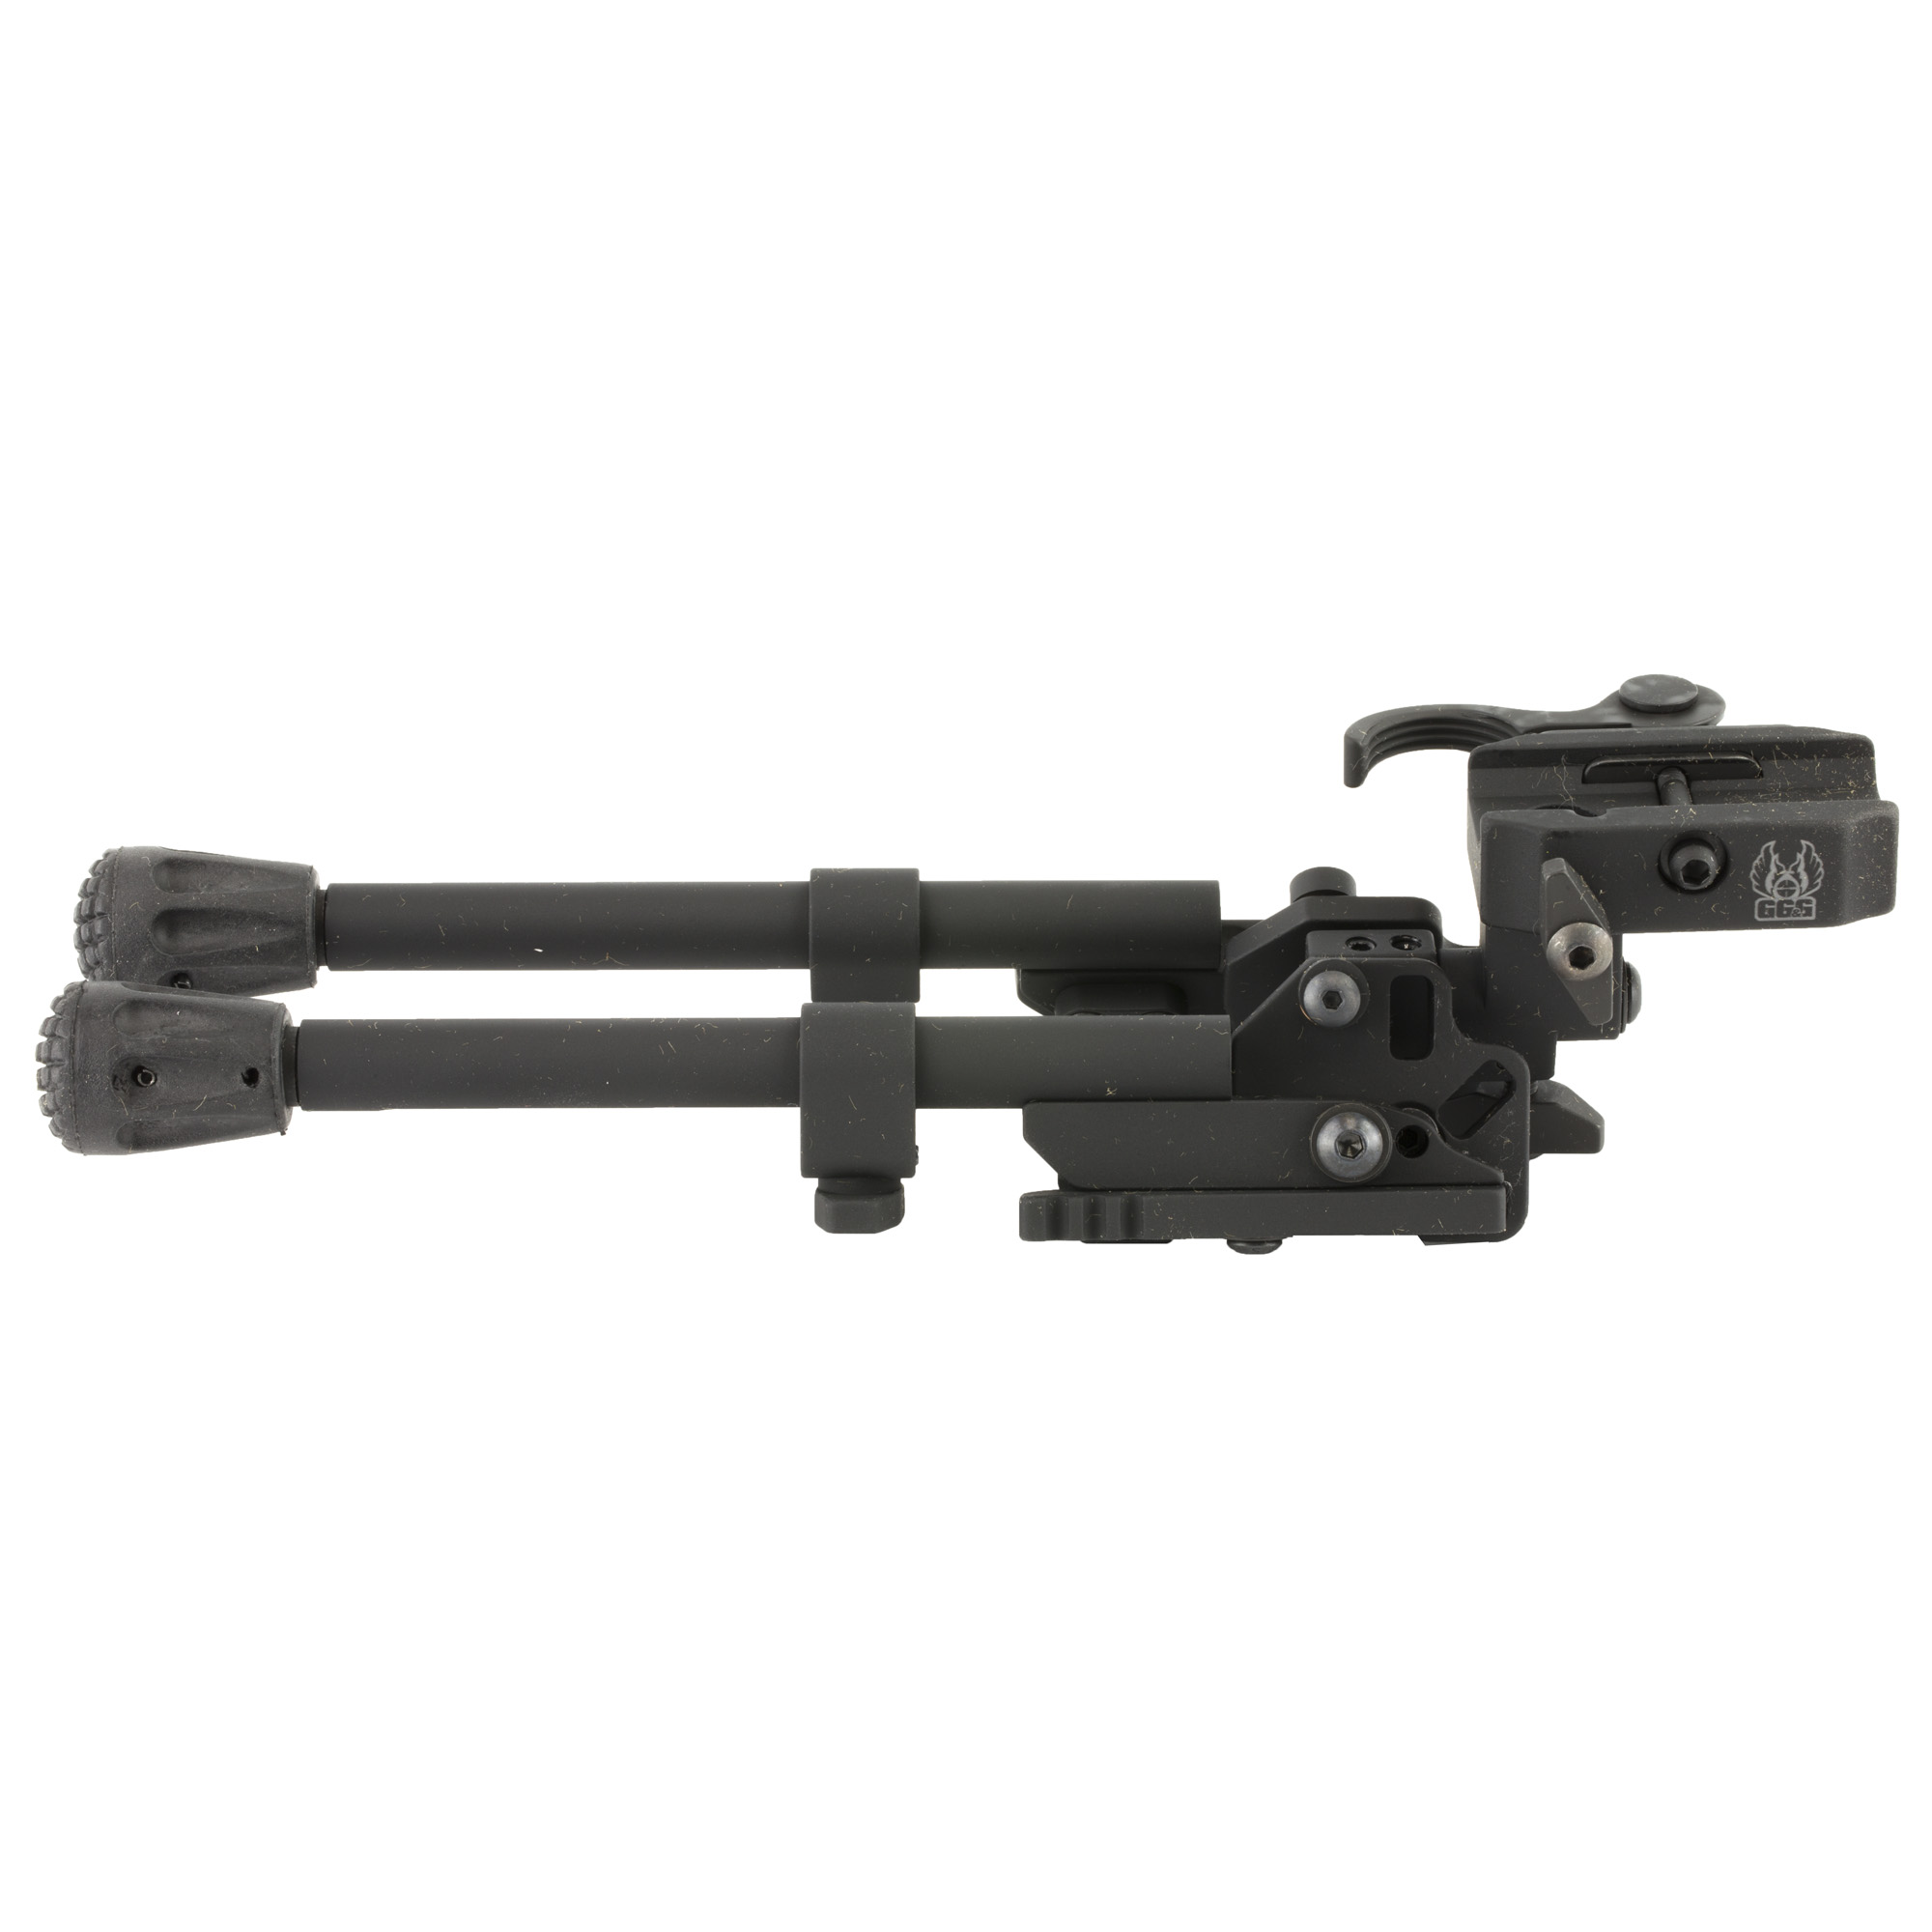 """GG&G's XDS-2 QD Quick Detach Tactical Bipod has a quick detach head that cants 25 degree"""" pans 20 degree (swivels left to right 20 degree)"""" a leg locking system that allows the bipod legs to lock forward at a 45 degree angle for difficult terrain"""" and rubber feet that grip more surfaces and are replaceable. The Accu-Force Quick Detach System provides an ergonomic QD lever system for quick and rock solid on-off transitions. When the QD Bipod legs are deployed and locked in the straight down position"""" they can be independently adjusted so that the overall height of the bipod ranges from 8"""" to 10.25""""."""